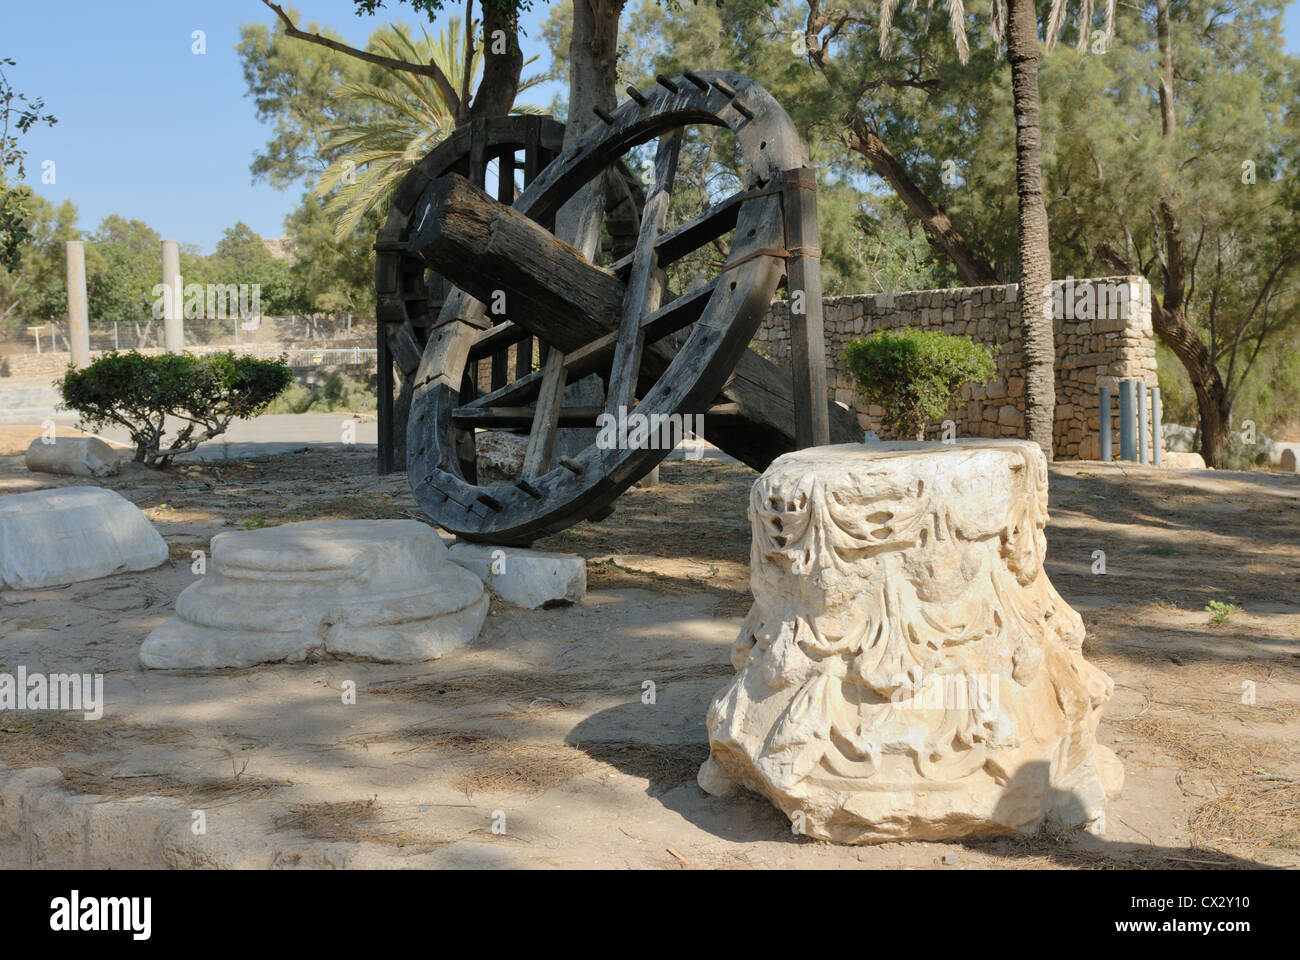 Archaeological finds in the park of the city of Ashqelon, Israel - Stock Image